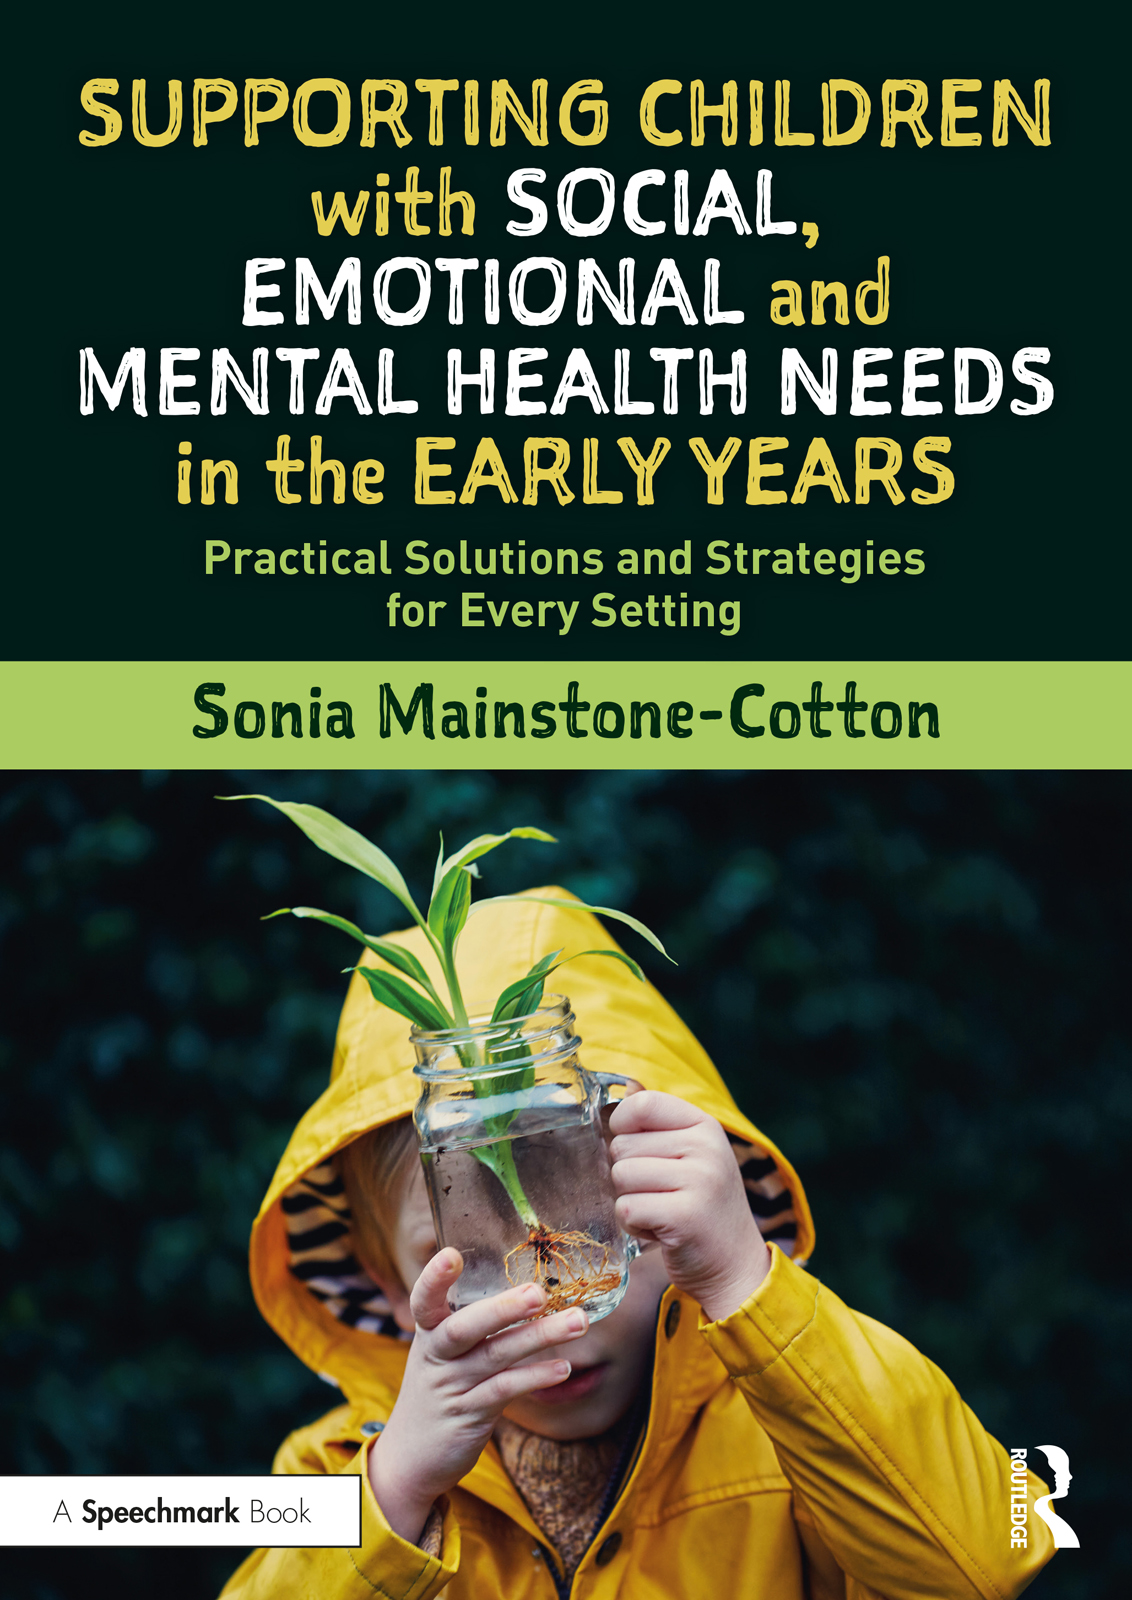 Social, emotional and mental health needs in children